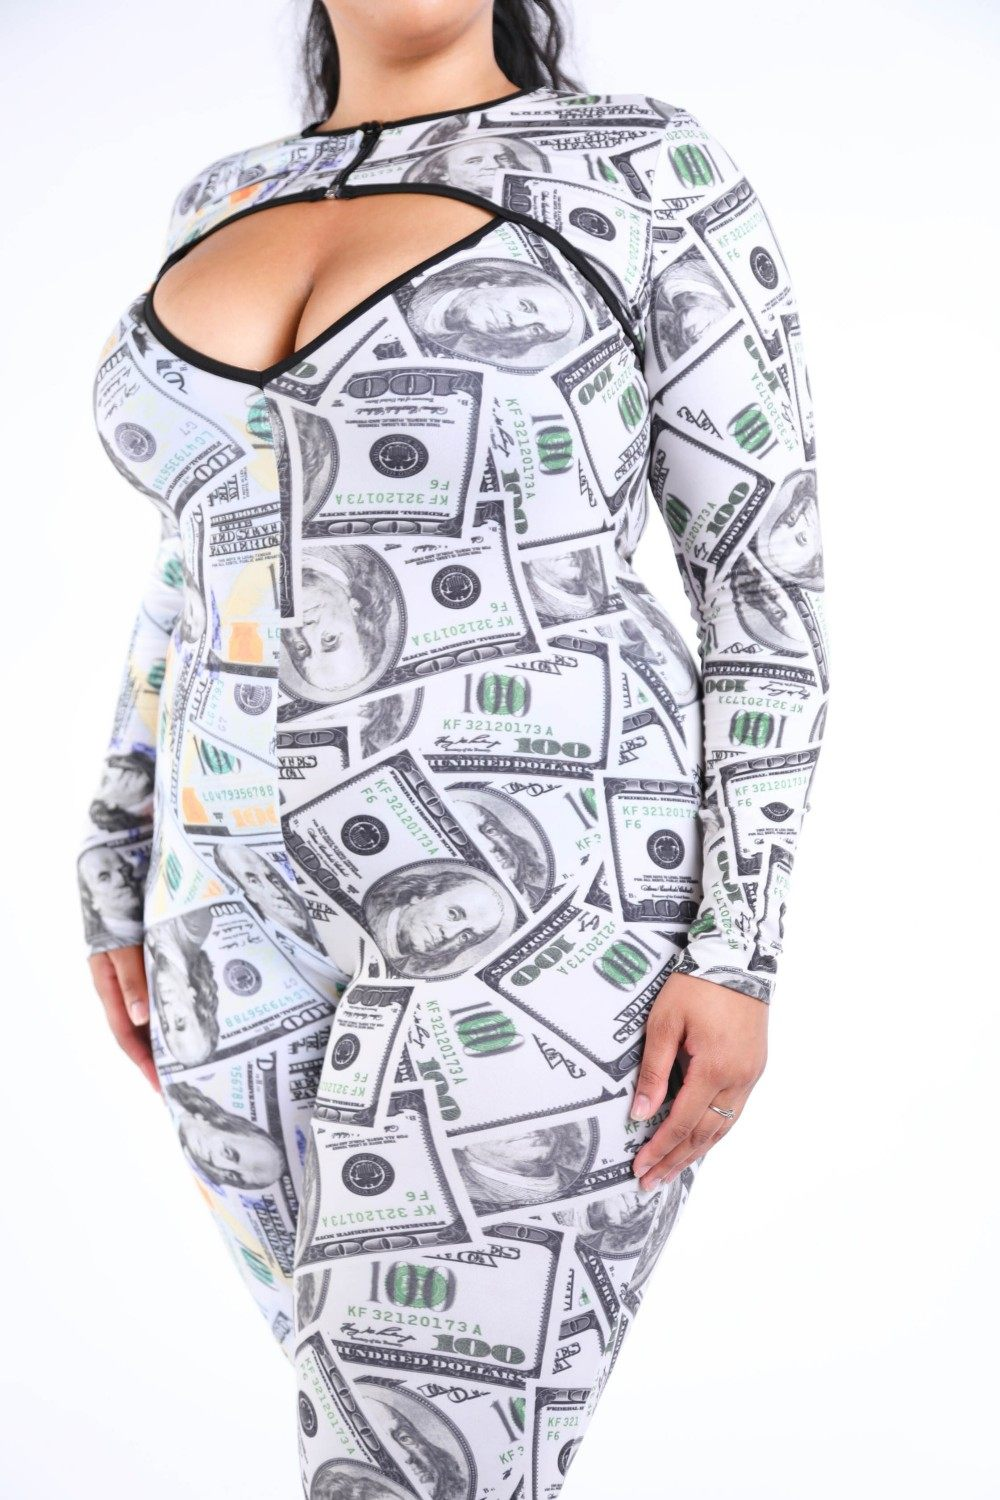 New Money Old Money Catsuit-Black Glitter Girl